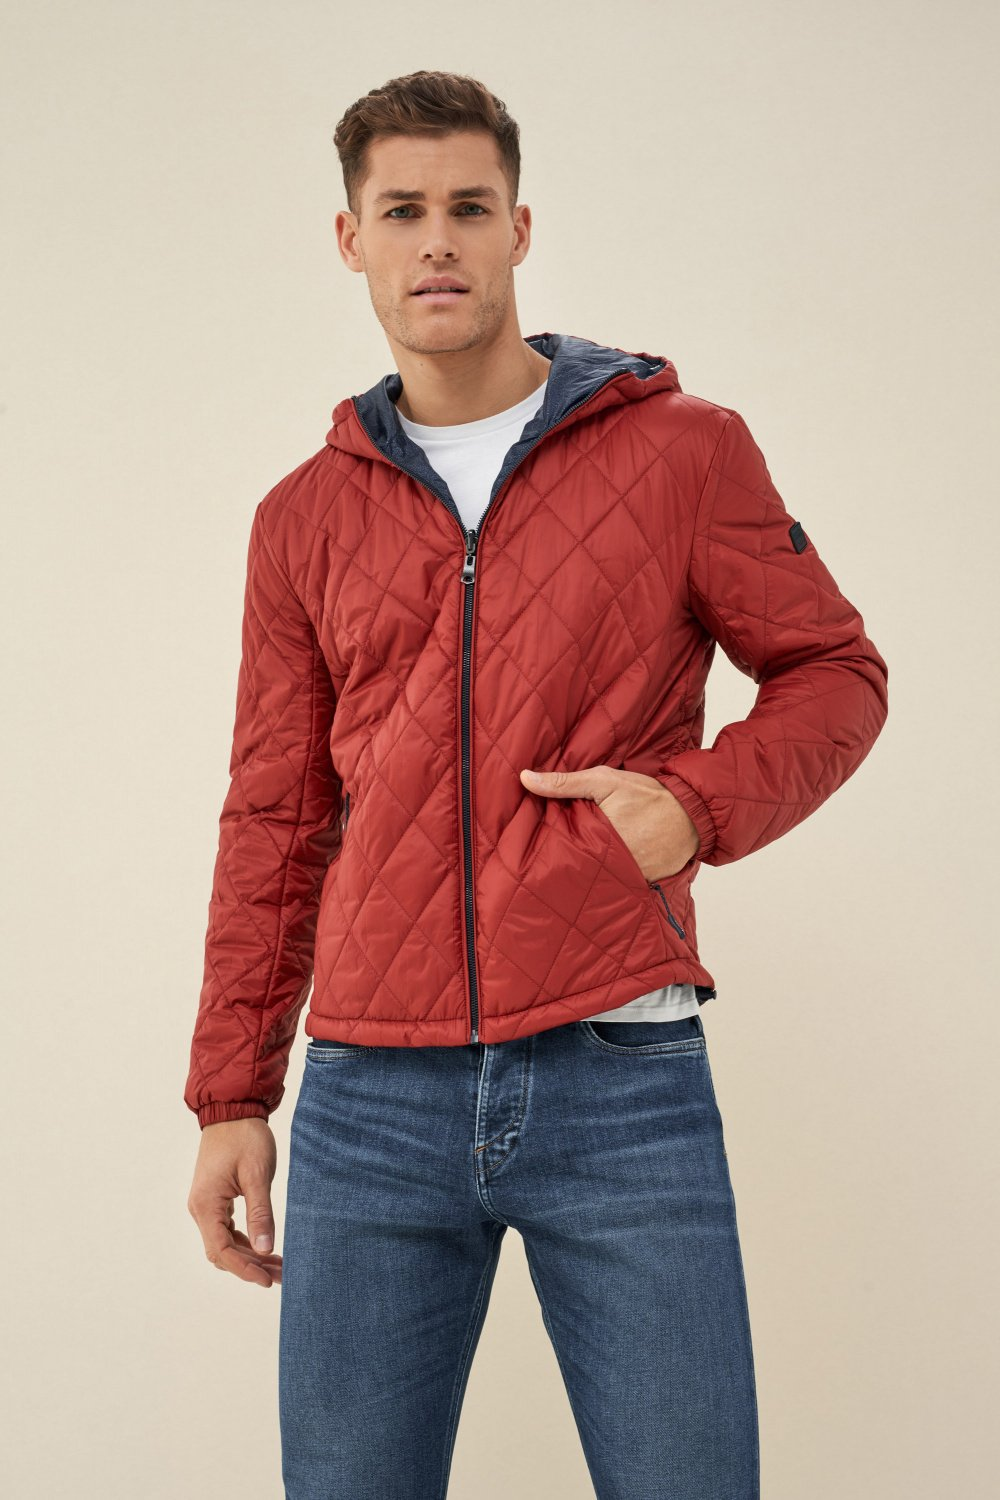 Reversible jacket made of recycled material - Salsa